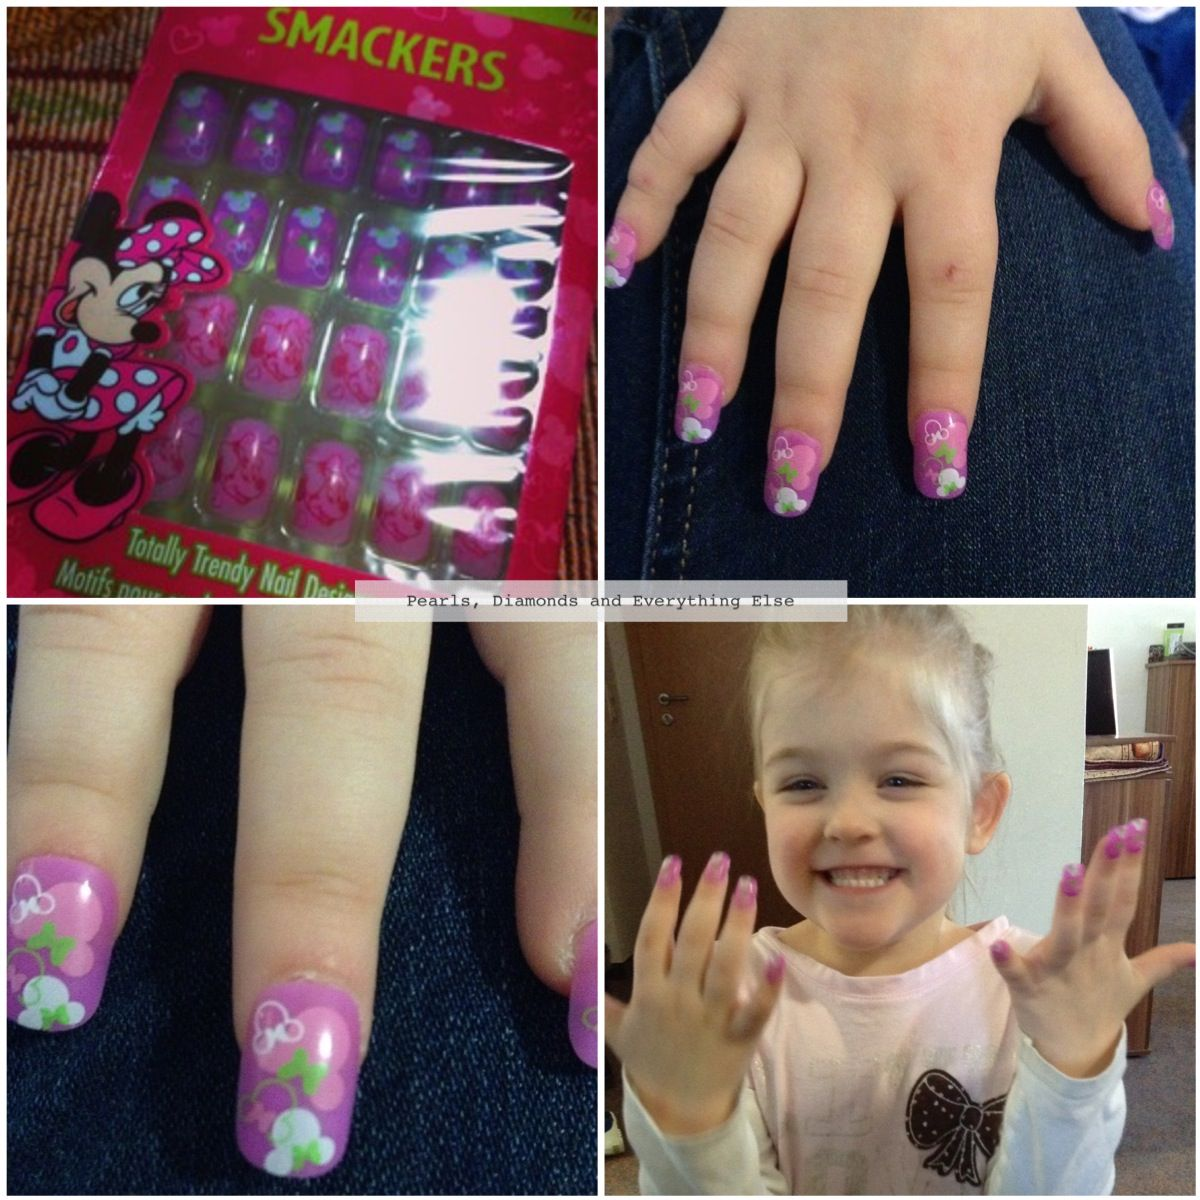 Smackers Press On Nails For Kids Nails For Kids Press On Nails Girl Sleepover